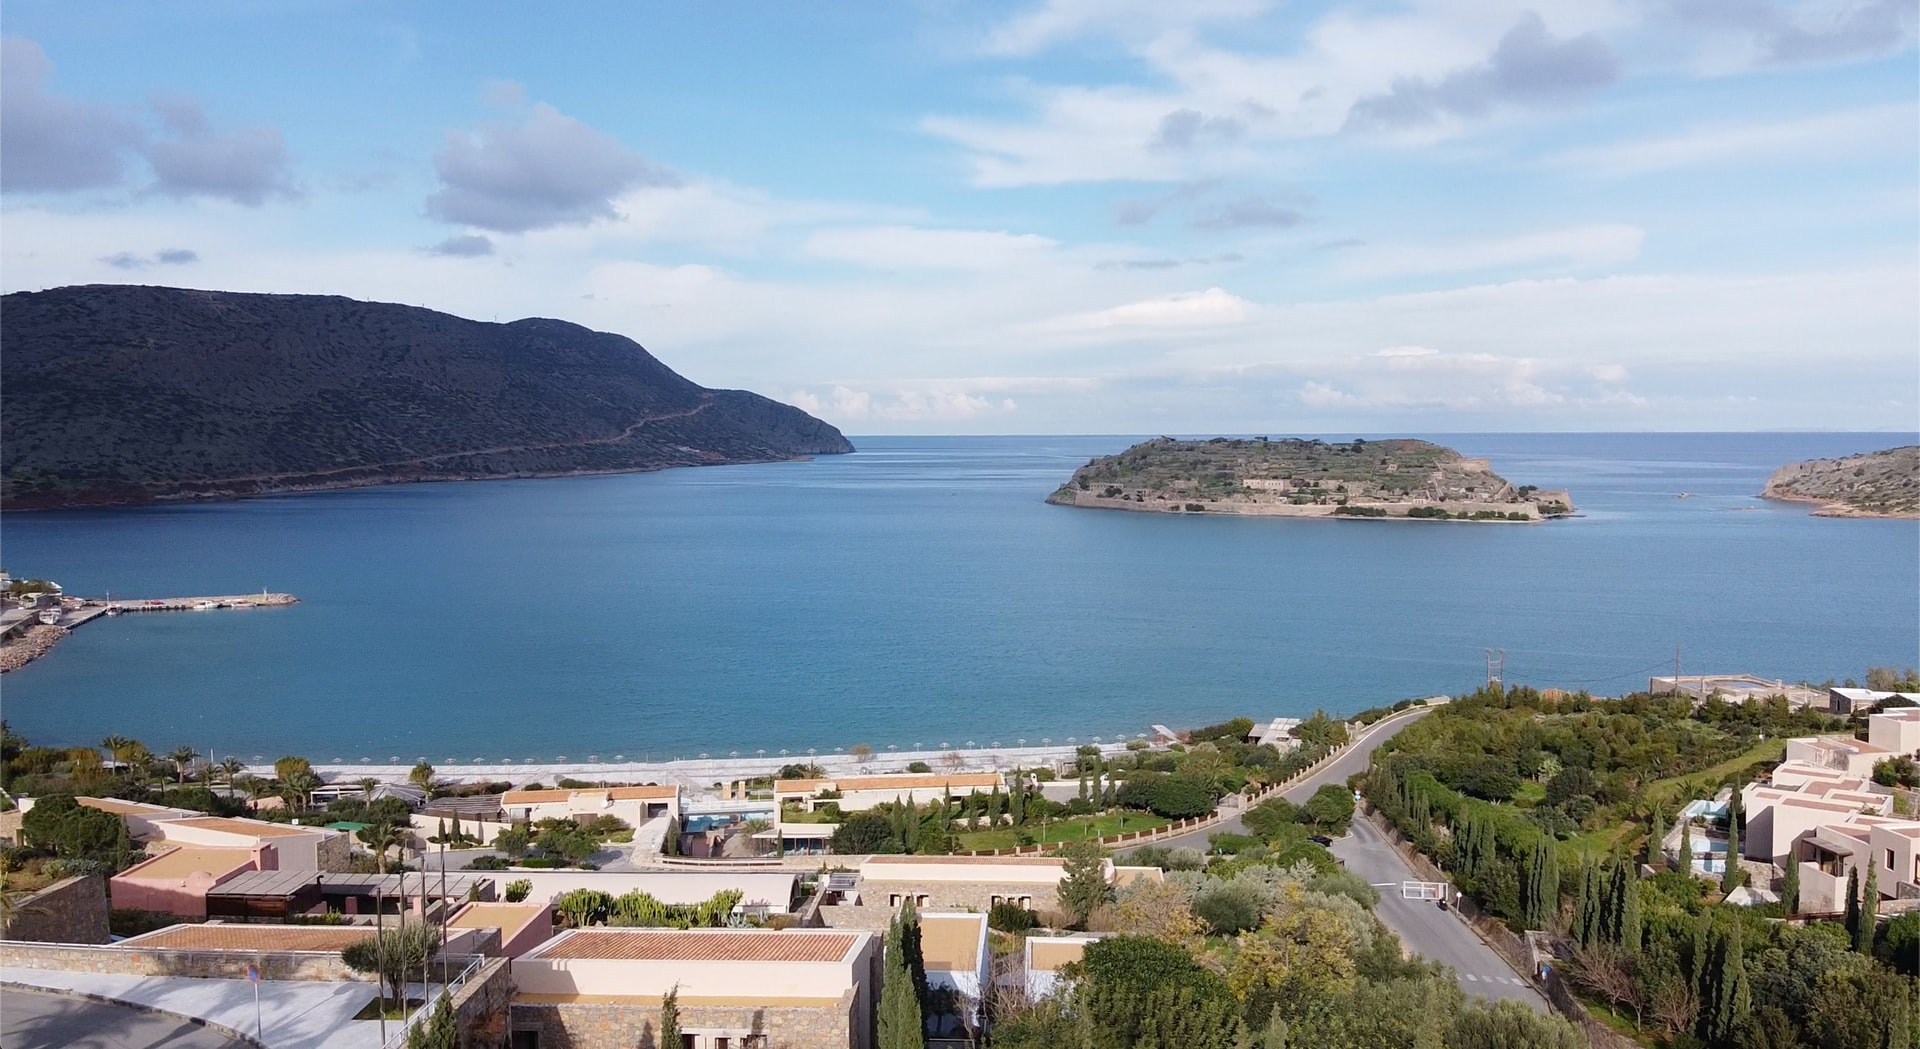 A full Guide to Lasithi, Crete: The Best Places to See